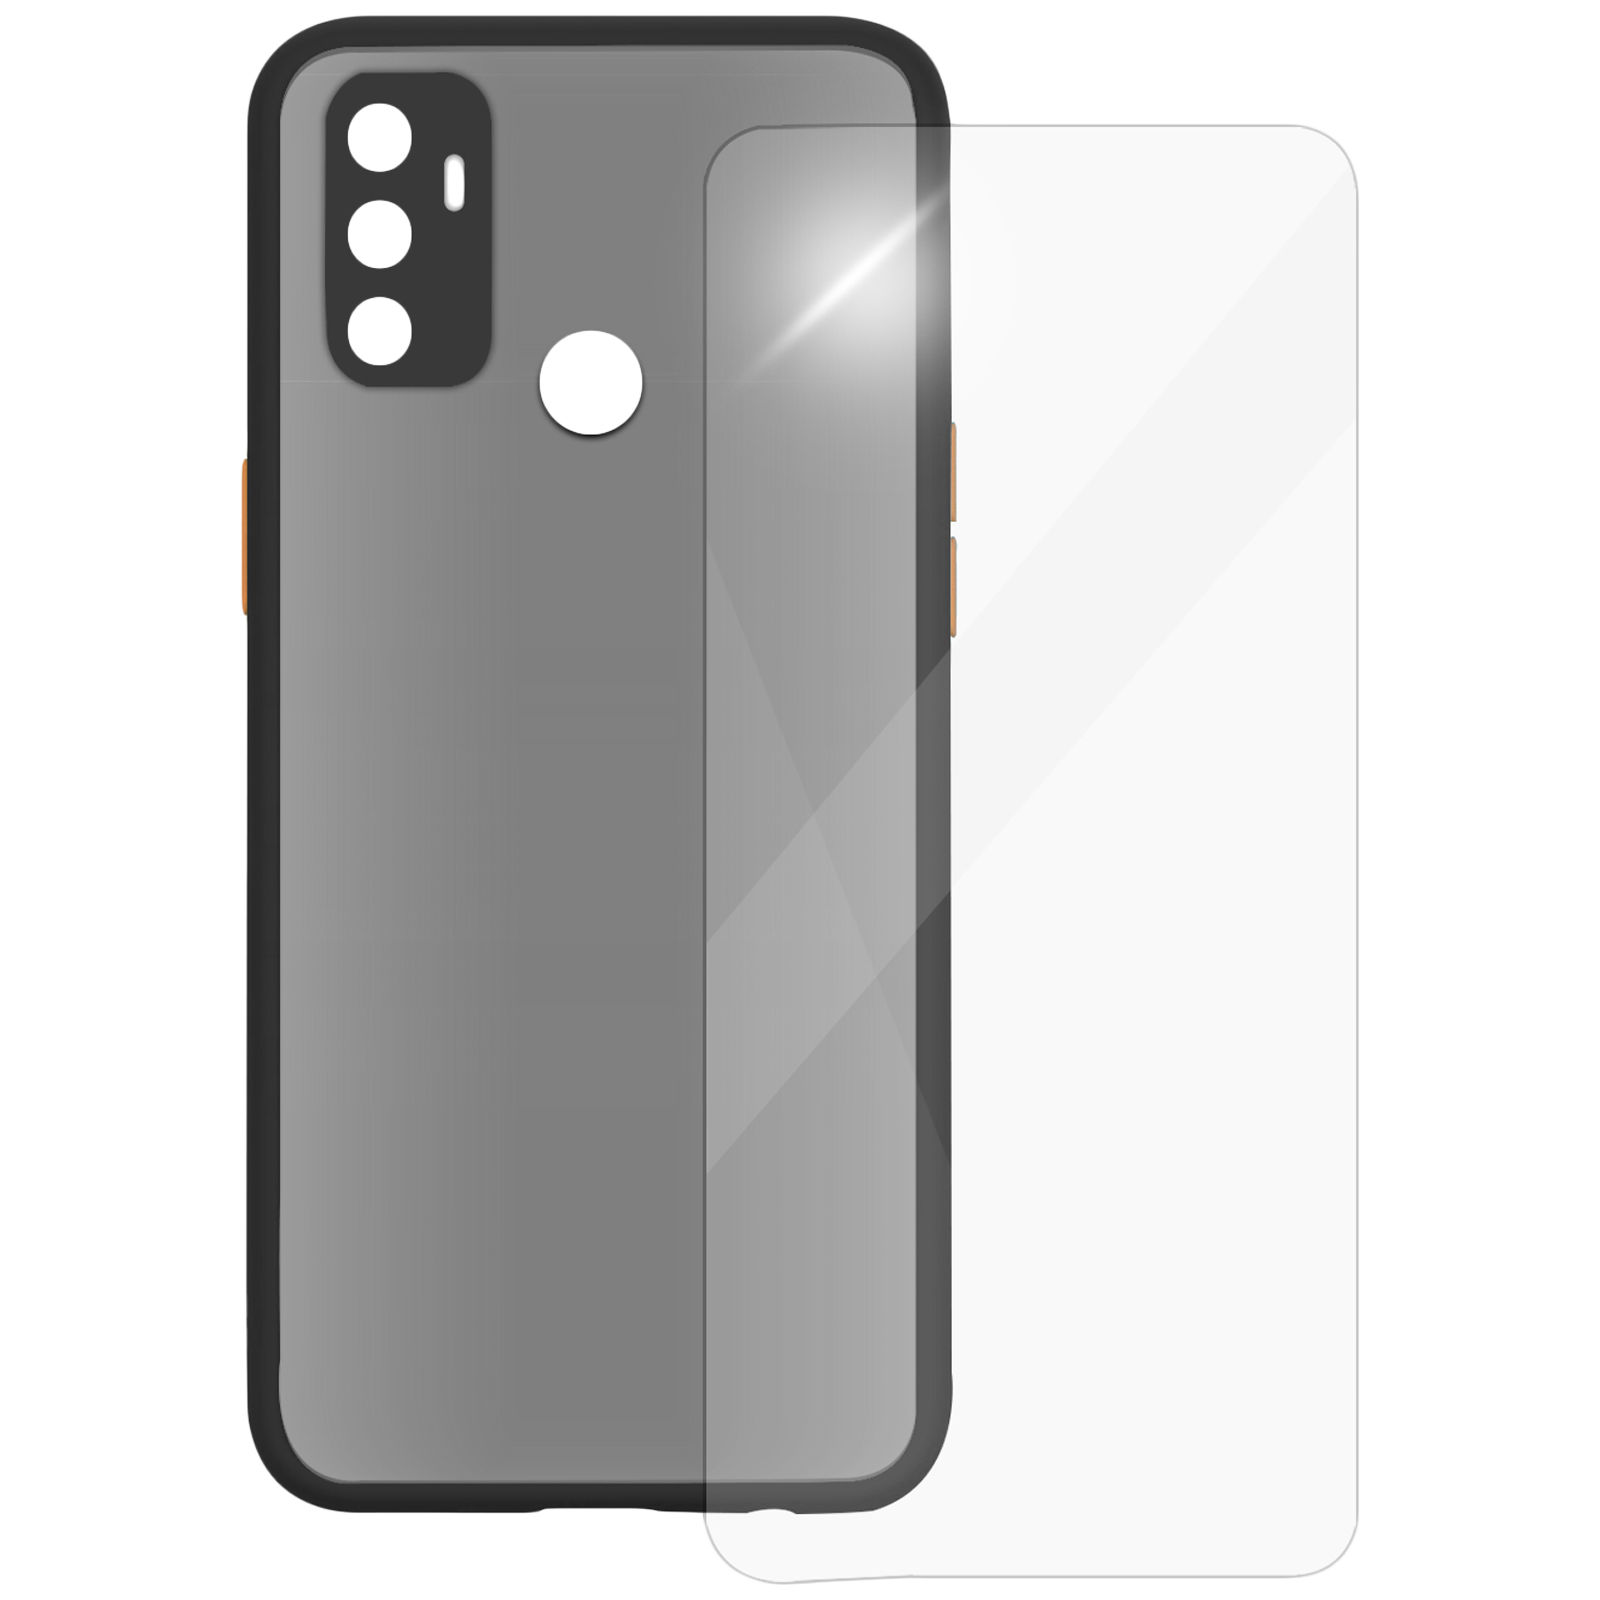 Arrow Camera Duplex Back Case and Screen Protector Bundle For Oppo A53 (Ultra Transparent Visibility, AR-958, Black)_1